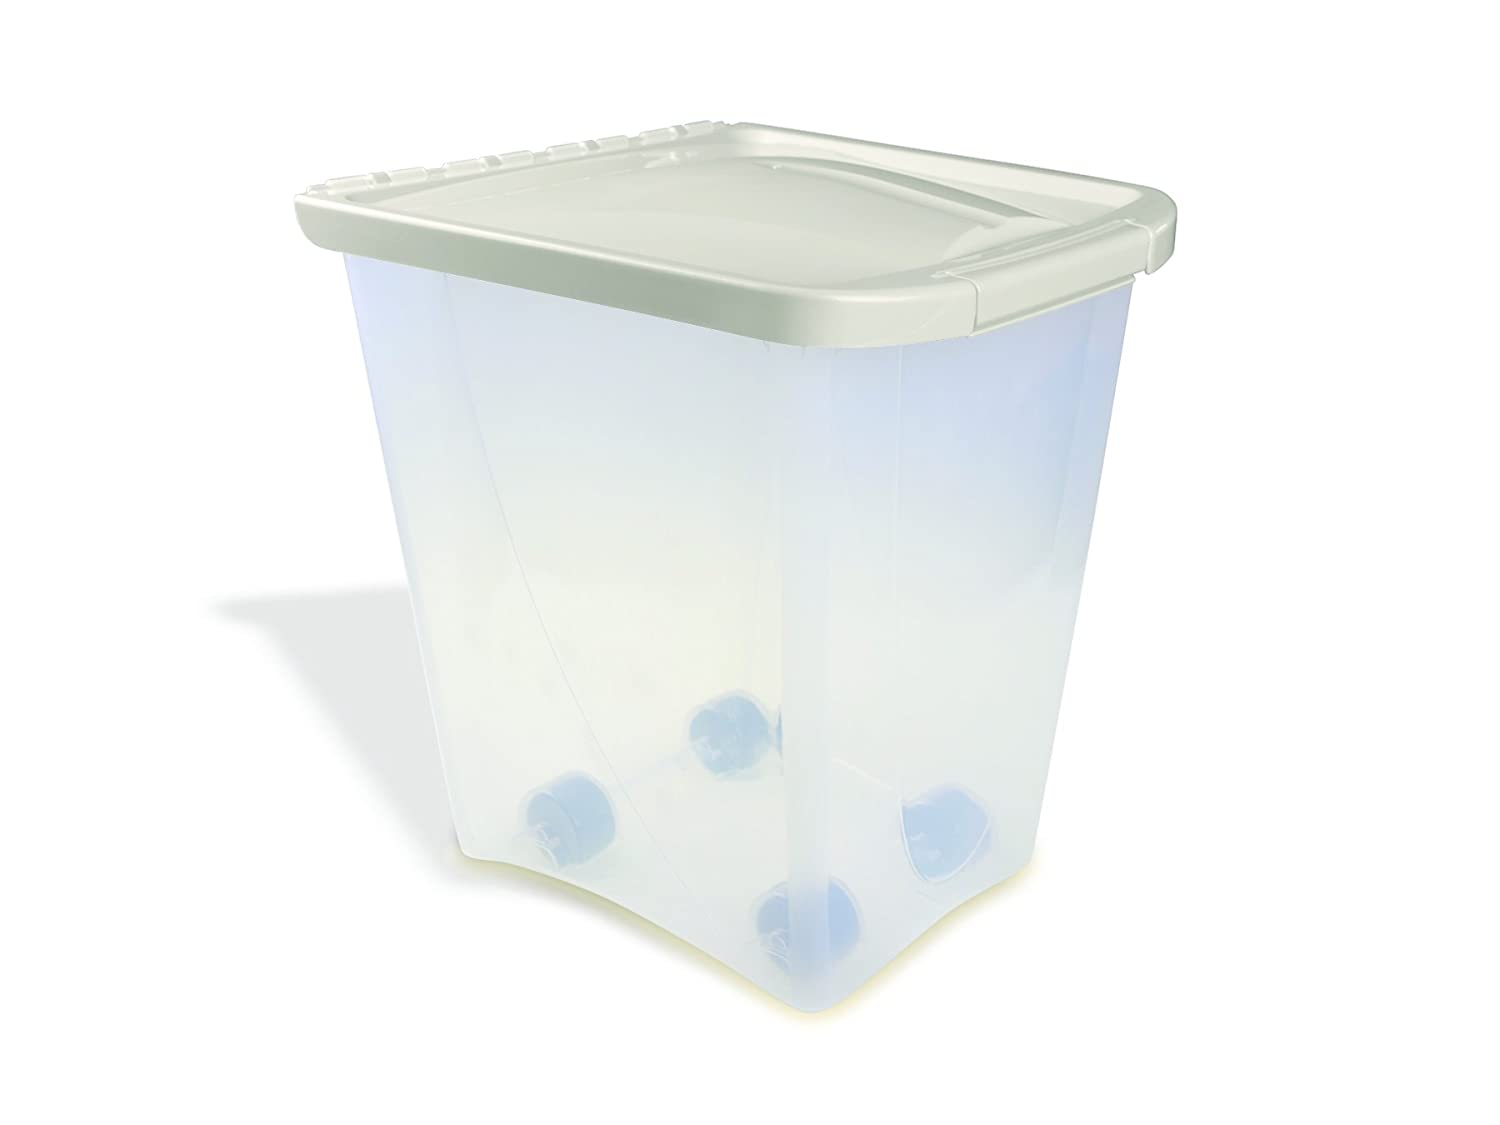 25-lb capacity Van Ness 25 Pound Food Container with Wheels